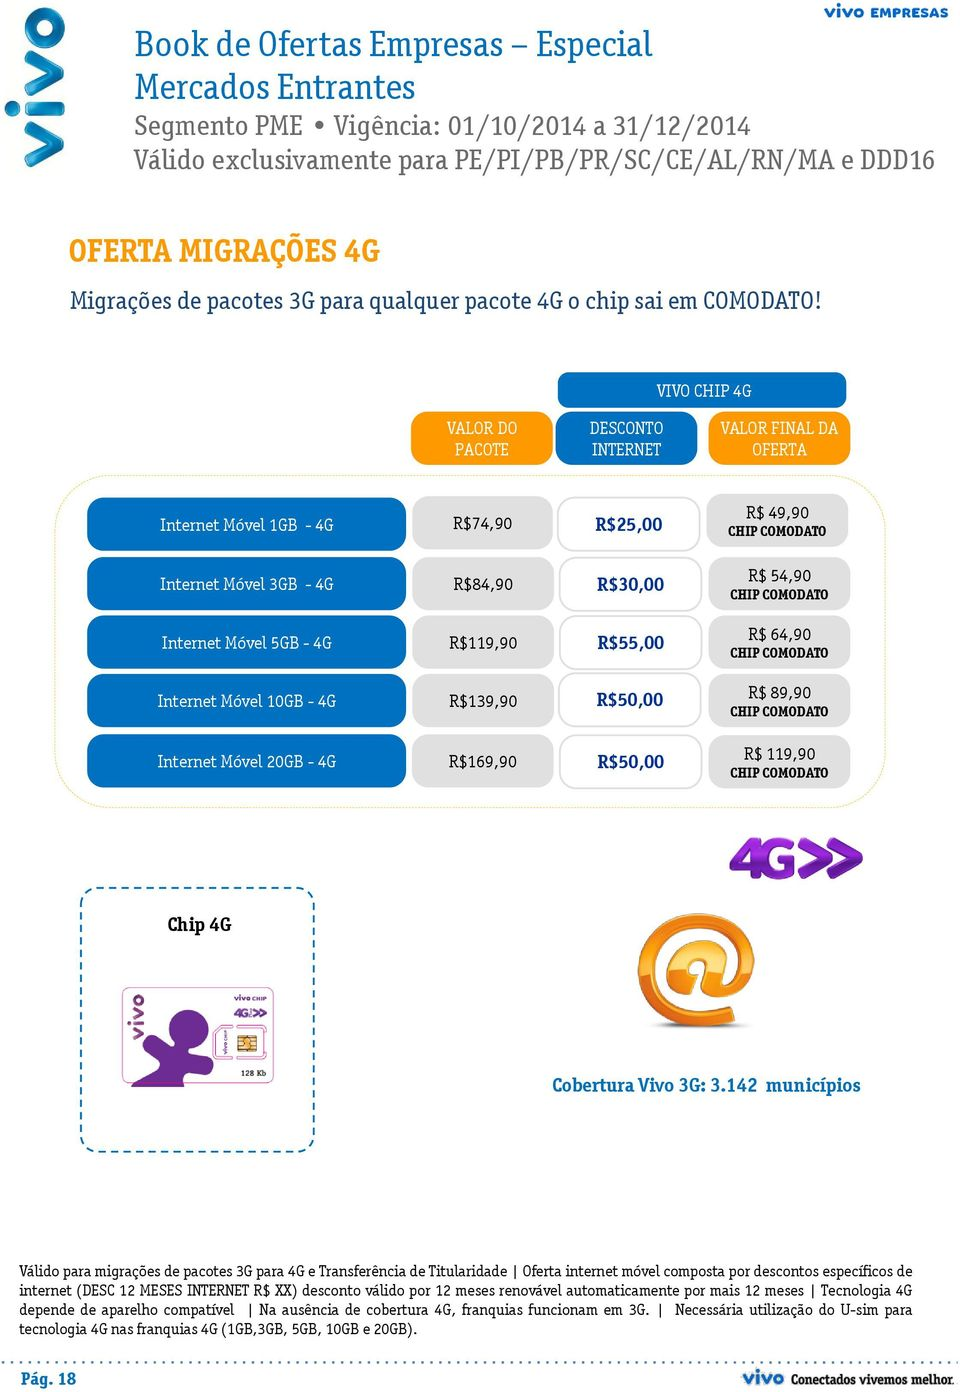 Internet Móvel 5GB - 4G R$119,90 R$55,00 R$ 64,90 CHIP COMODATO Internet Móvel 10GB - 4G R$139,90 R$50,00 R$ 89,90 CHIP COMODATO Internet Móvel 20GB - 4G R$169,90 R$50,00 R$ 119,90 CHIP COMODATO Chip